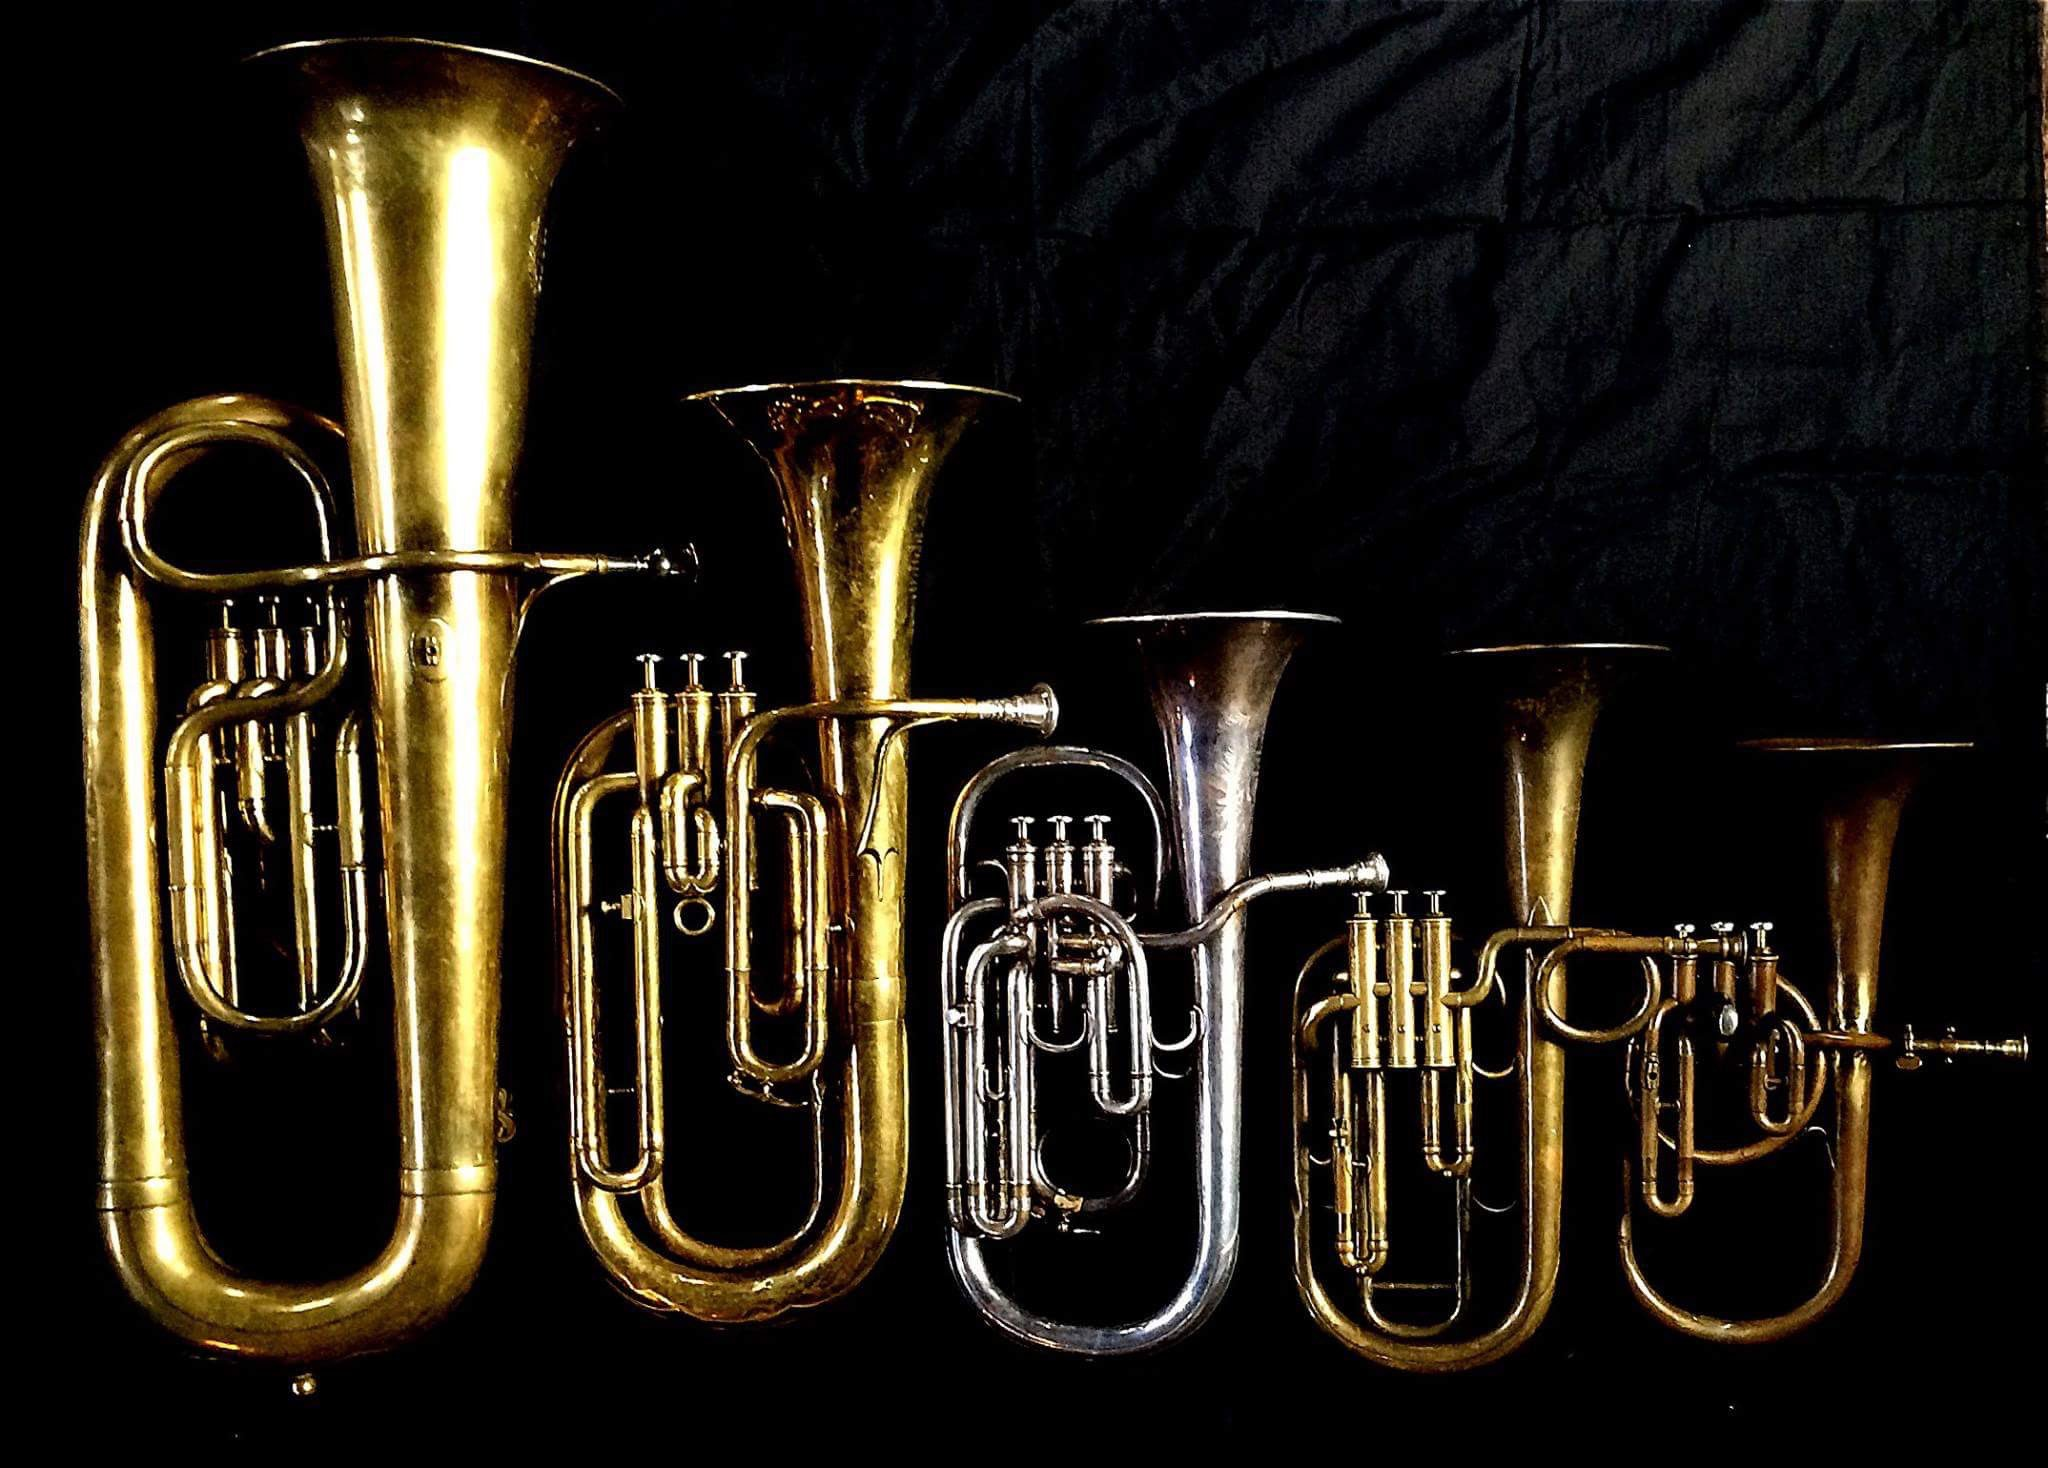 Left to Right:  Contrabass saxhorn in E-flat   by E. Daniel (7167, Marseille, c. 1850),     Baritone saxhorn in B-flat   by Couesnon (44139, 94 Rue D'angouleme Exposition Universelle De Paris, 1900) ,  Tenor saxhorn in E flat   by Boosey & Co (47317, 295 Regent Street, London, 1900).   Tenor saxhorn in F/E flat/D     by Antoine Courtois (Paris, c. 1855), sold by Arthur Chappell (London),      Contralto saxhorn in B-flat   by J. Grass (32 Rue des Ponts de Comines, Lille, est. 1868.